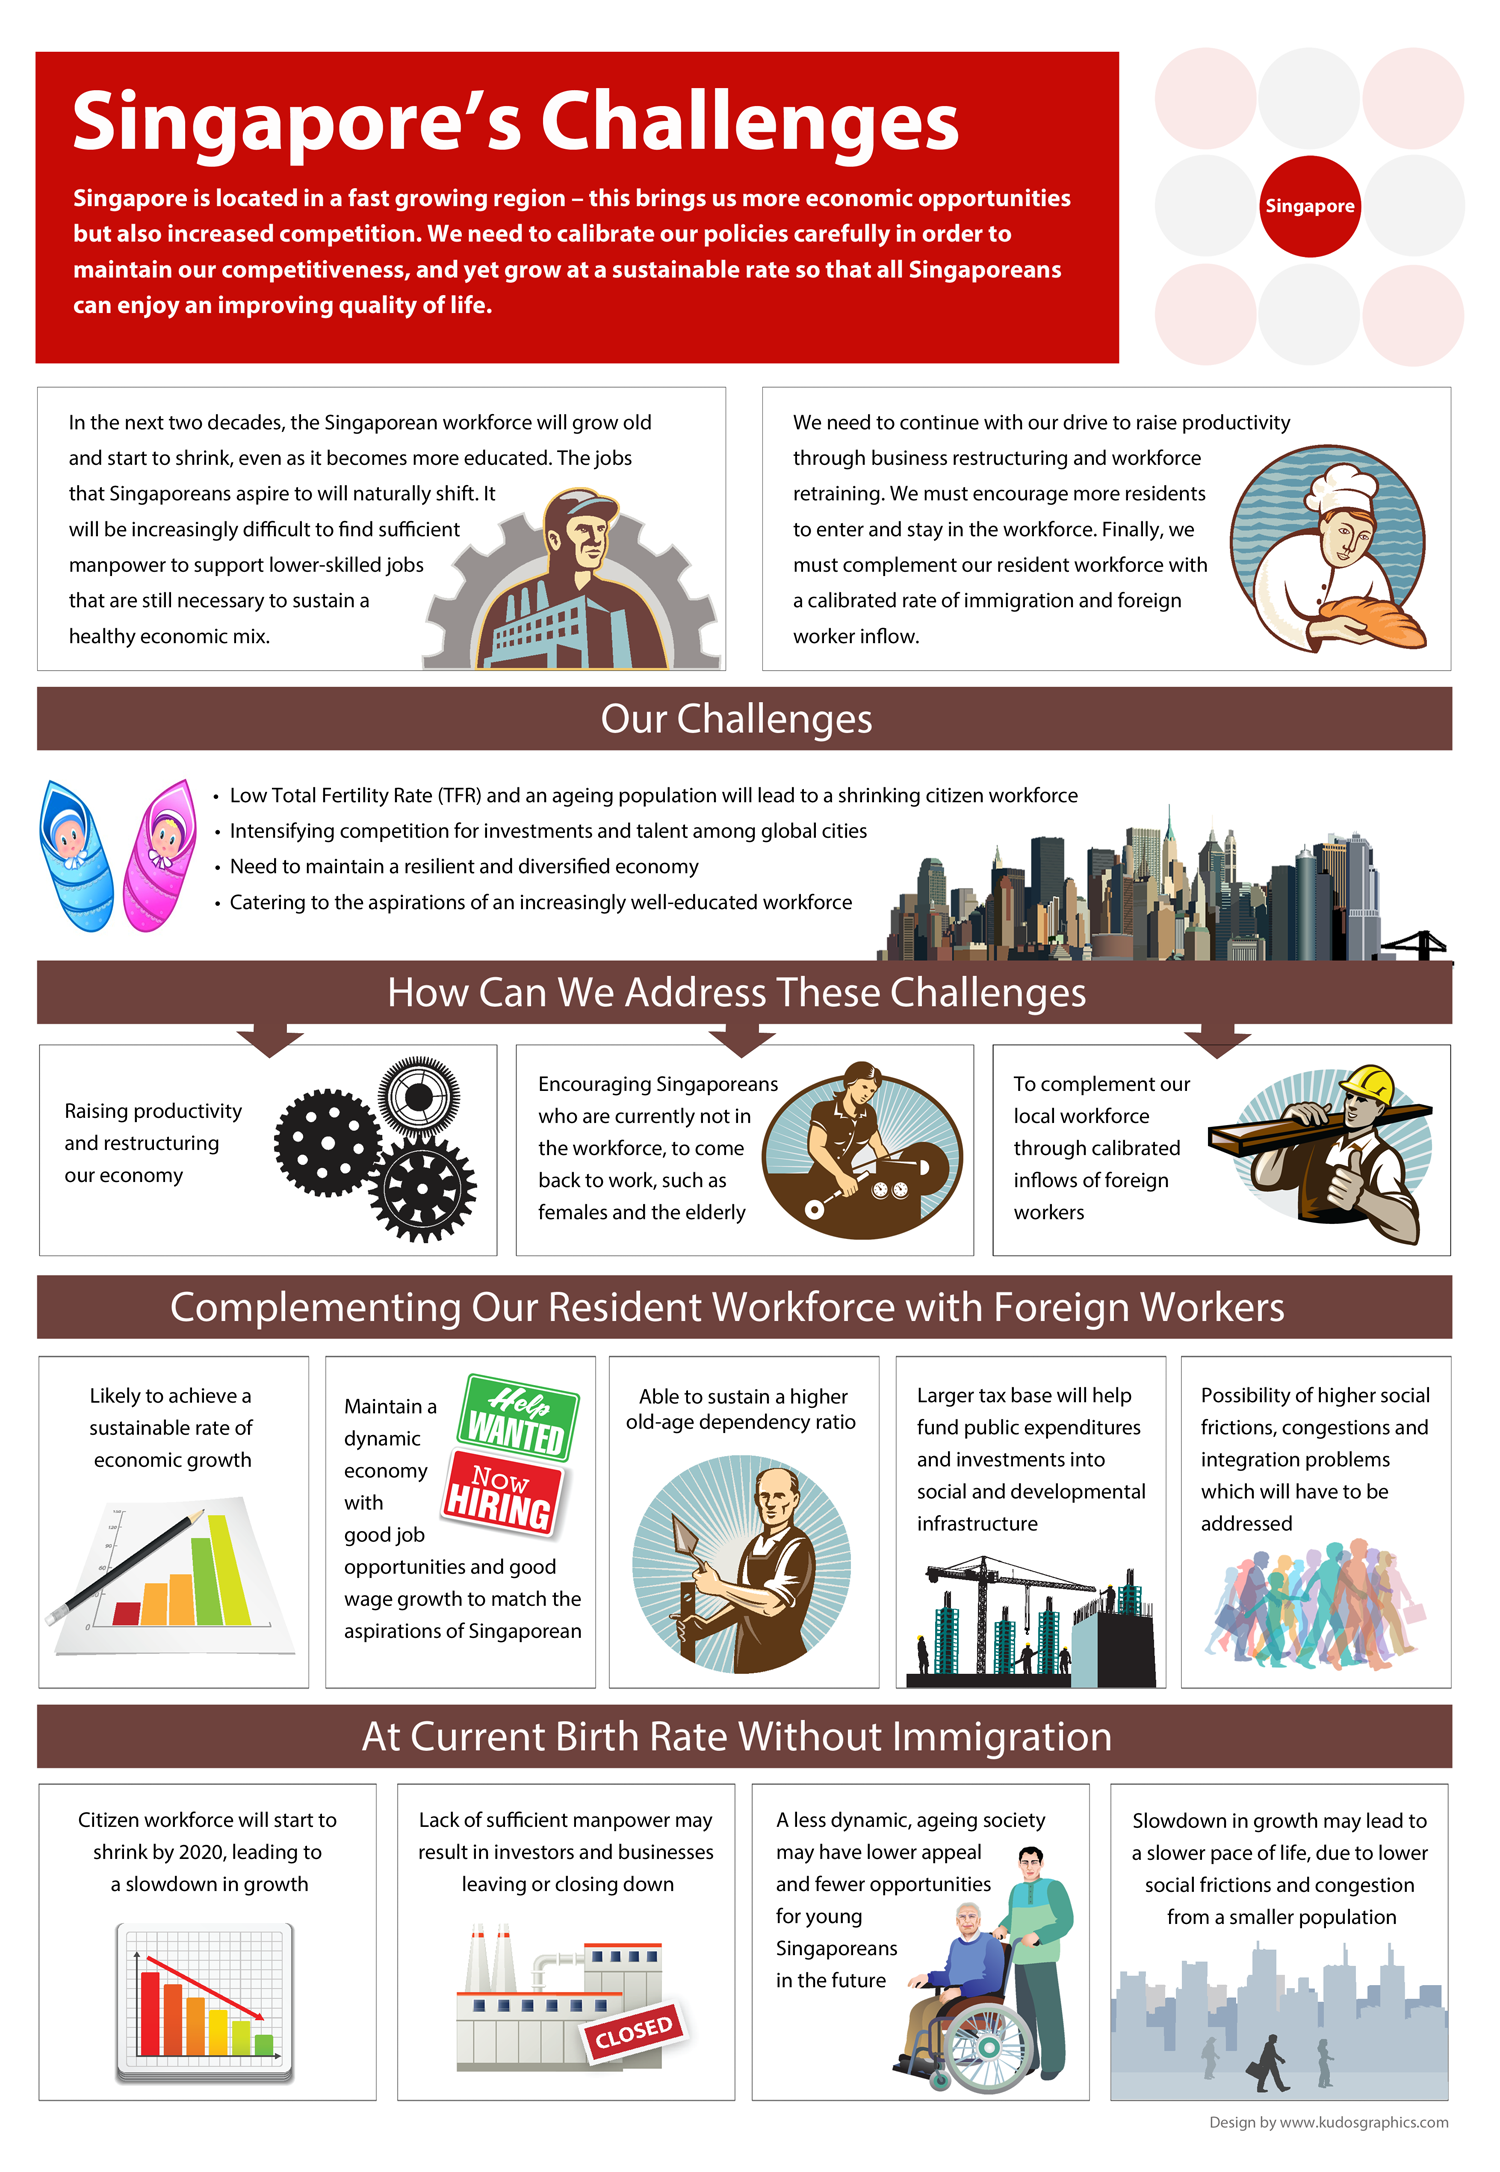 Singapore's Challenges Infographic